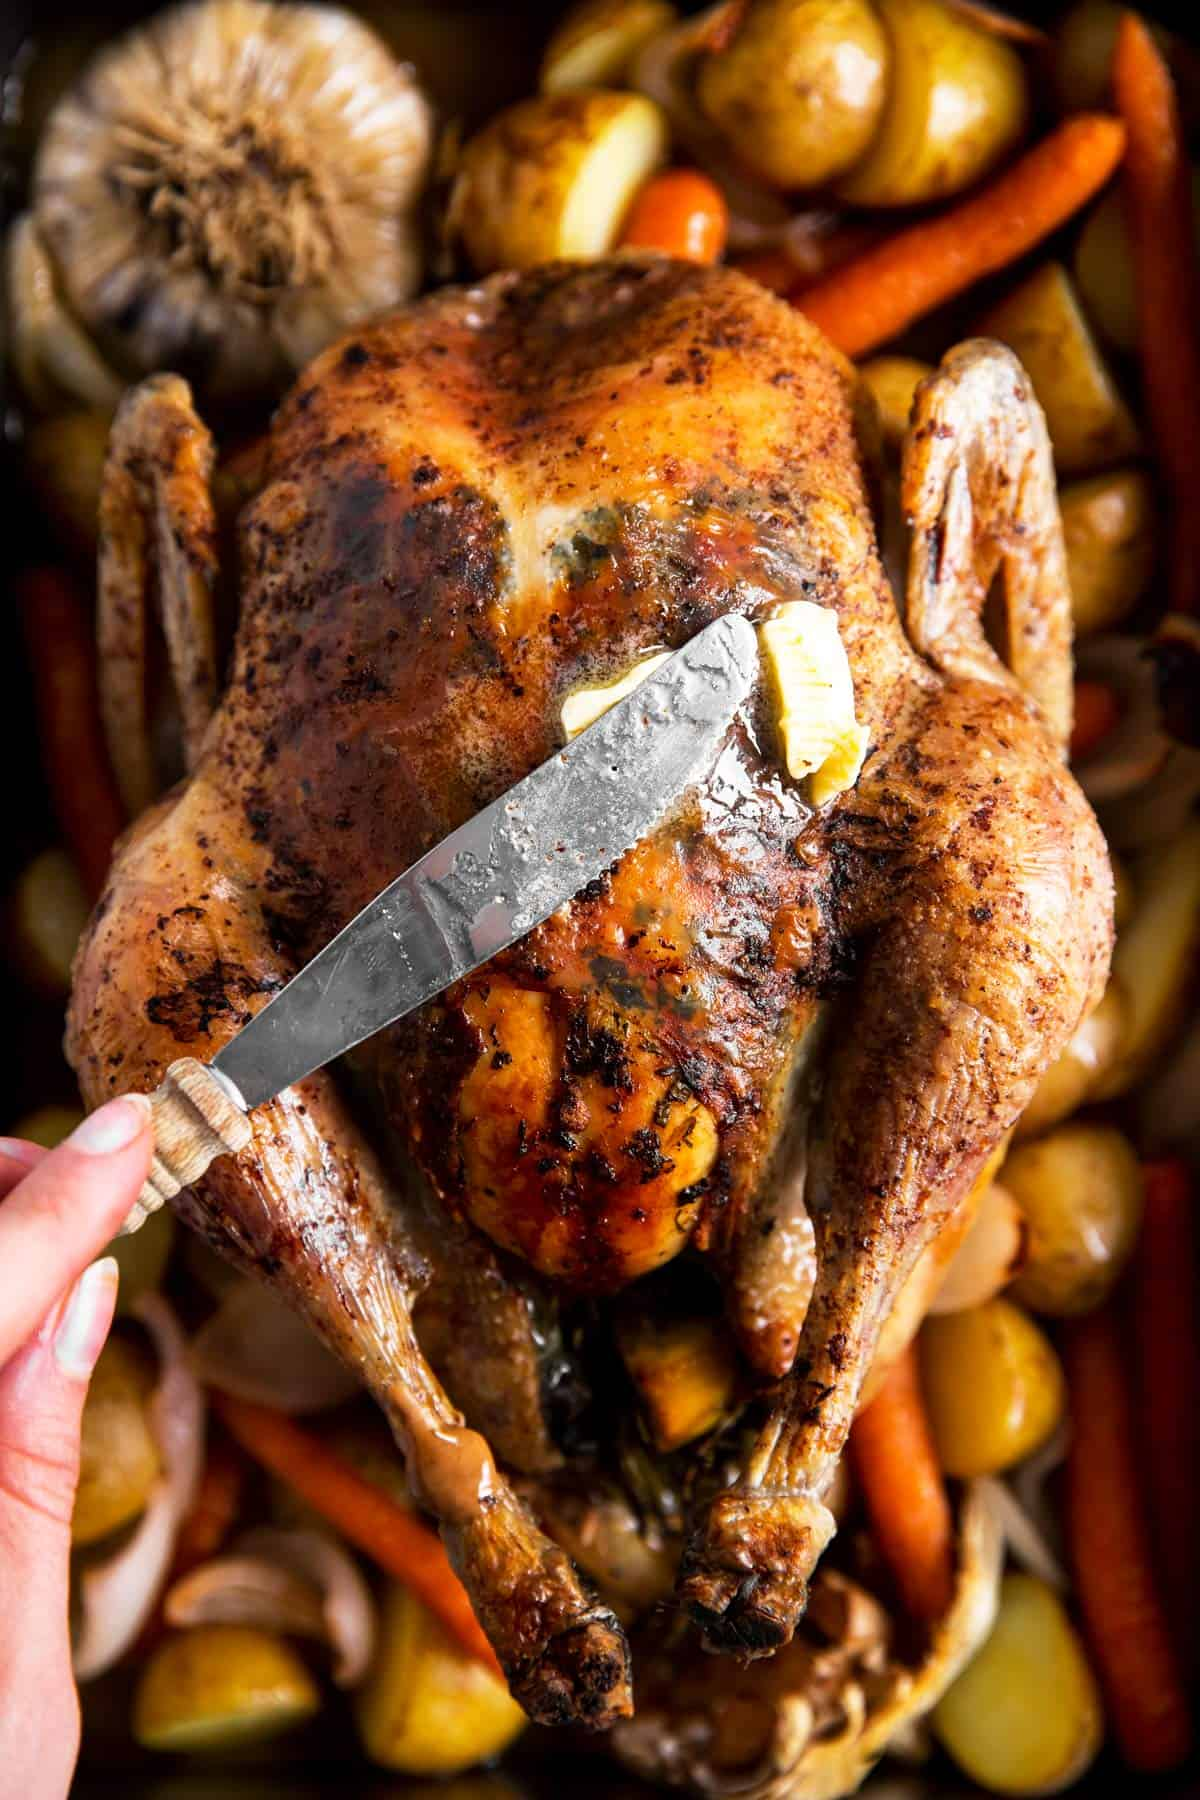 female hand using butter knife to brush butter over roasted chicken